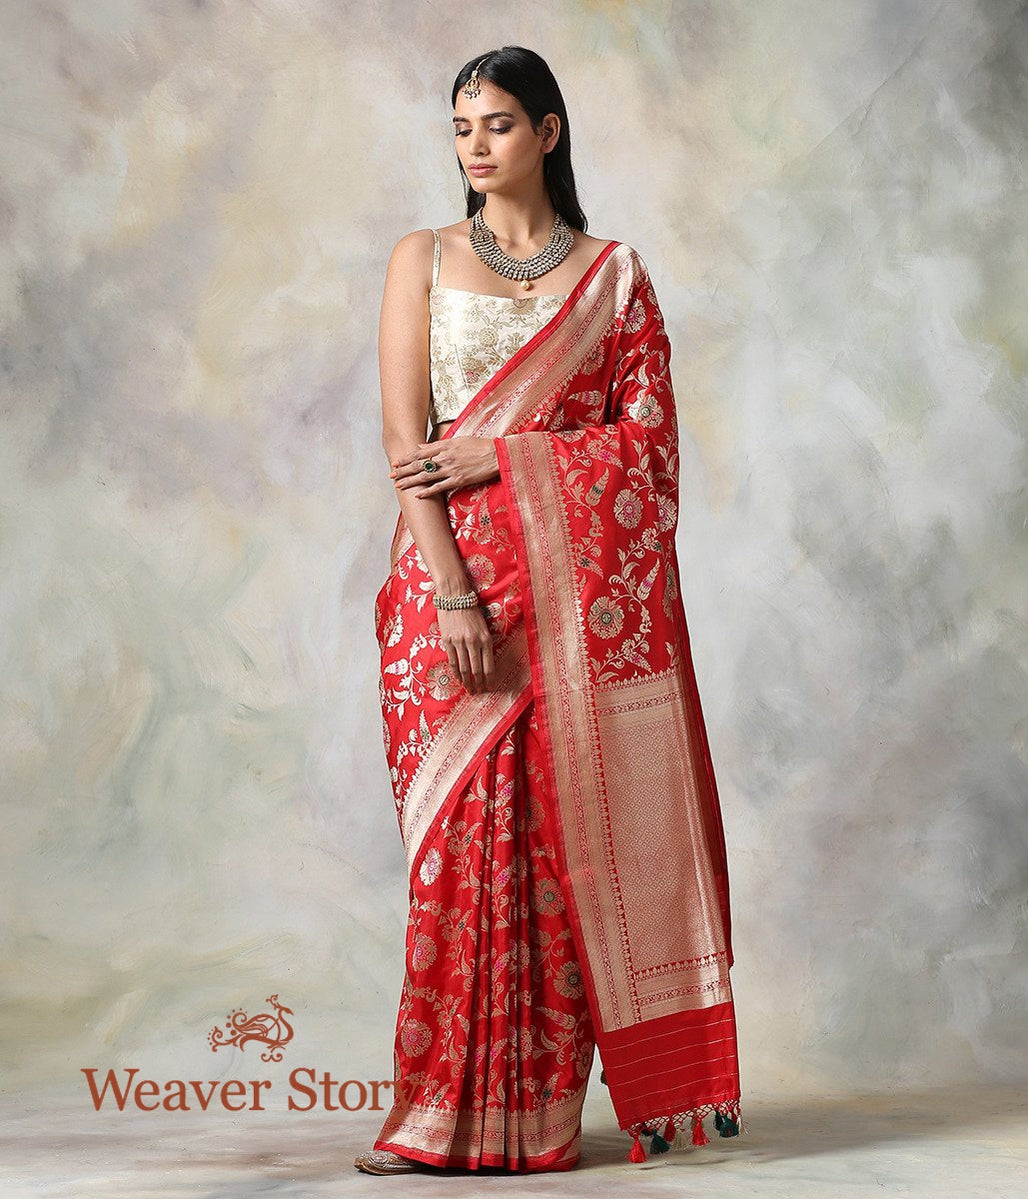 Handwoven Red Cutwork Meenakari Jangla Saree